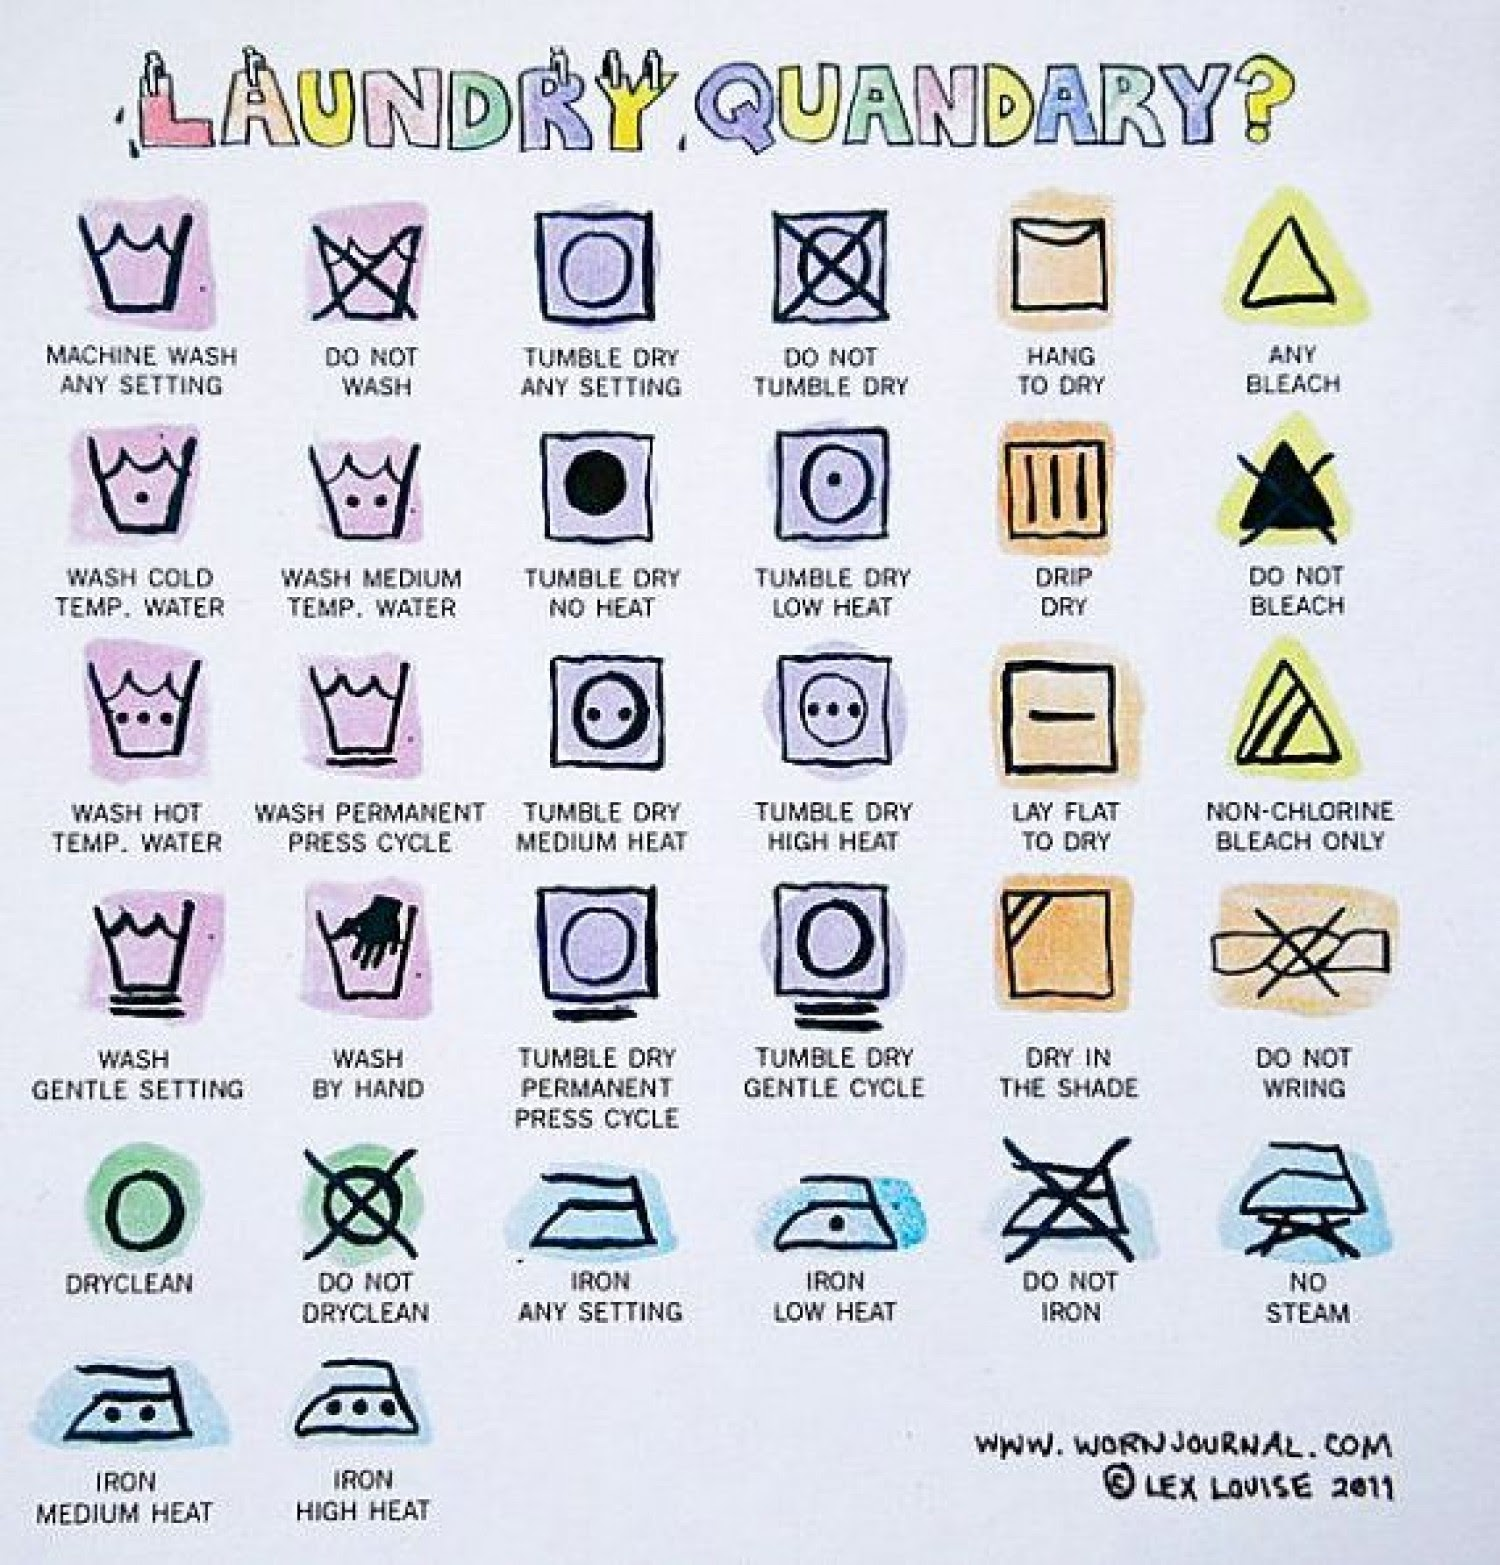 Laundry symbols with the descriptions of what they mean underneath